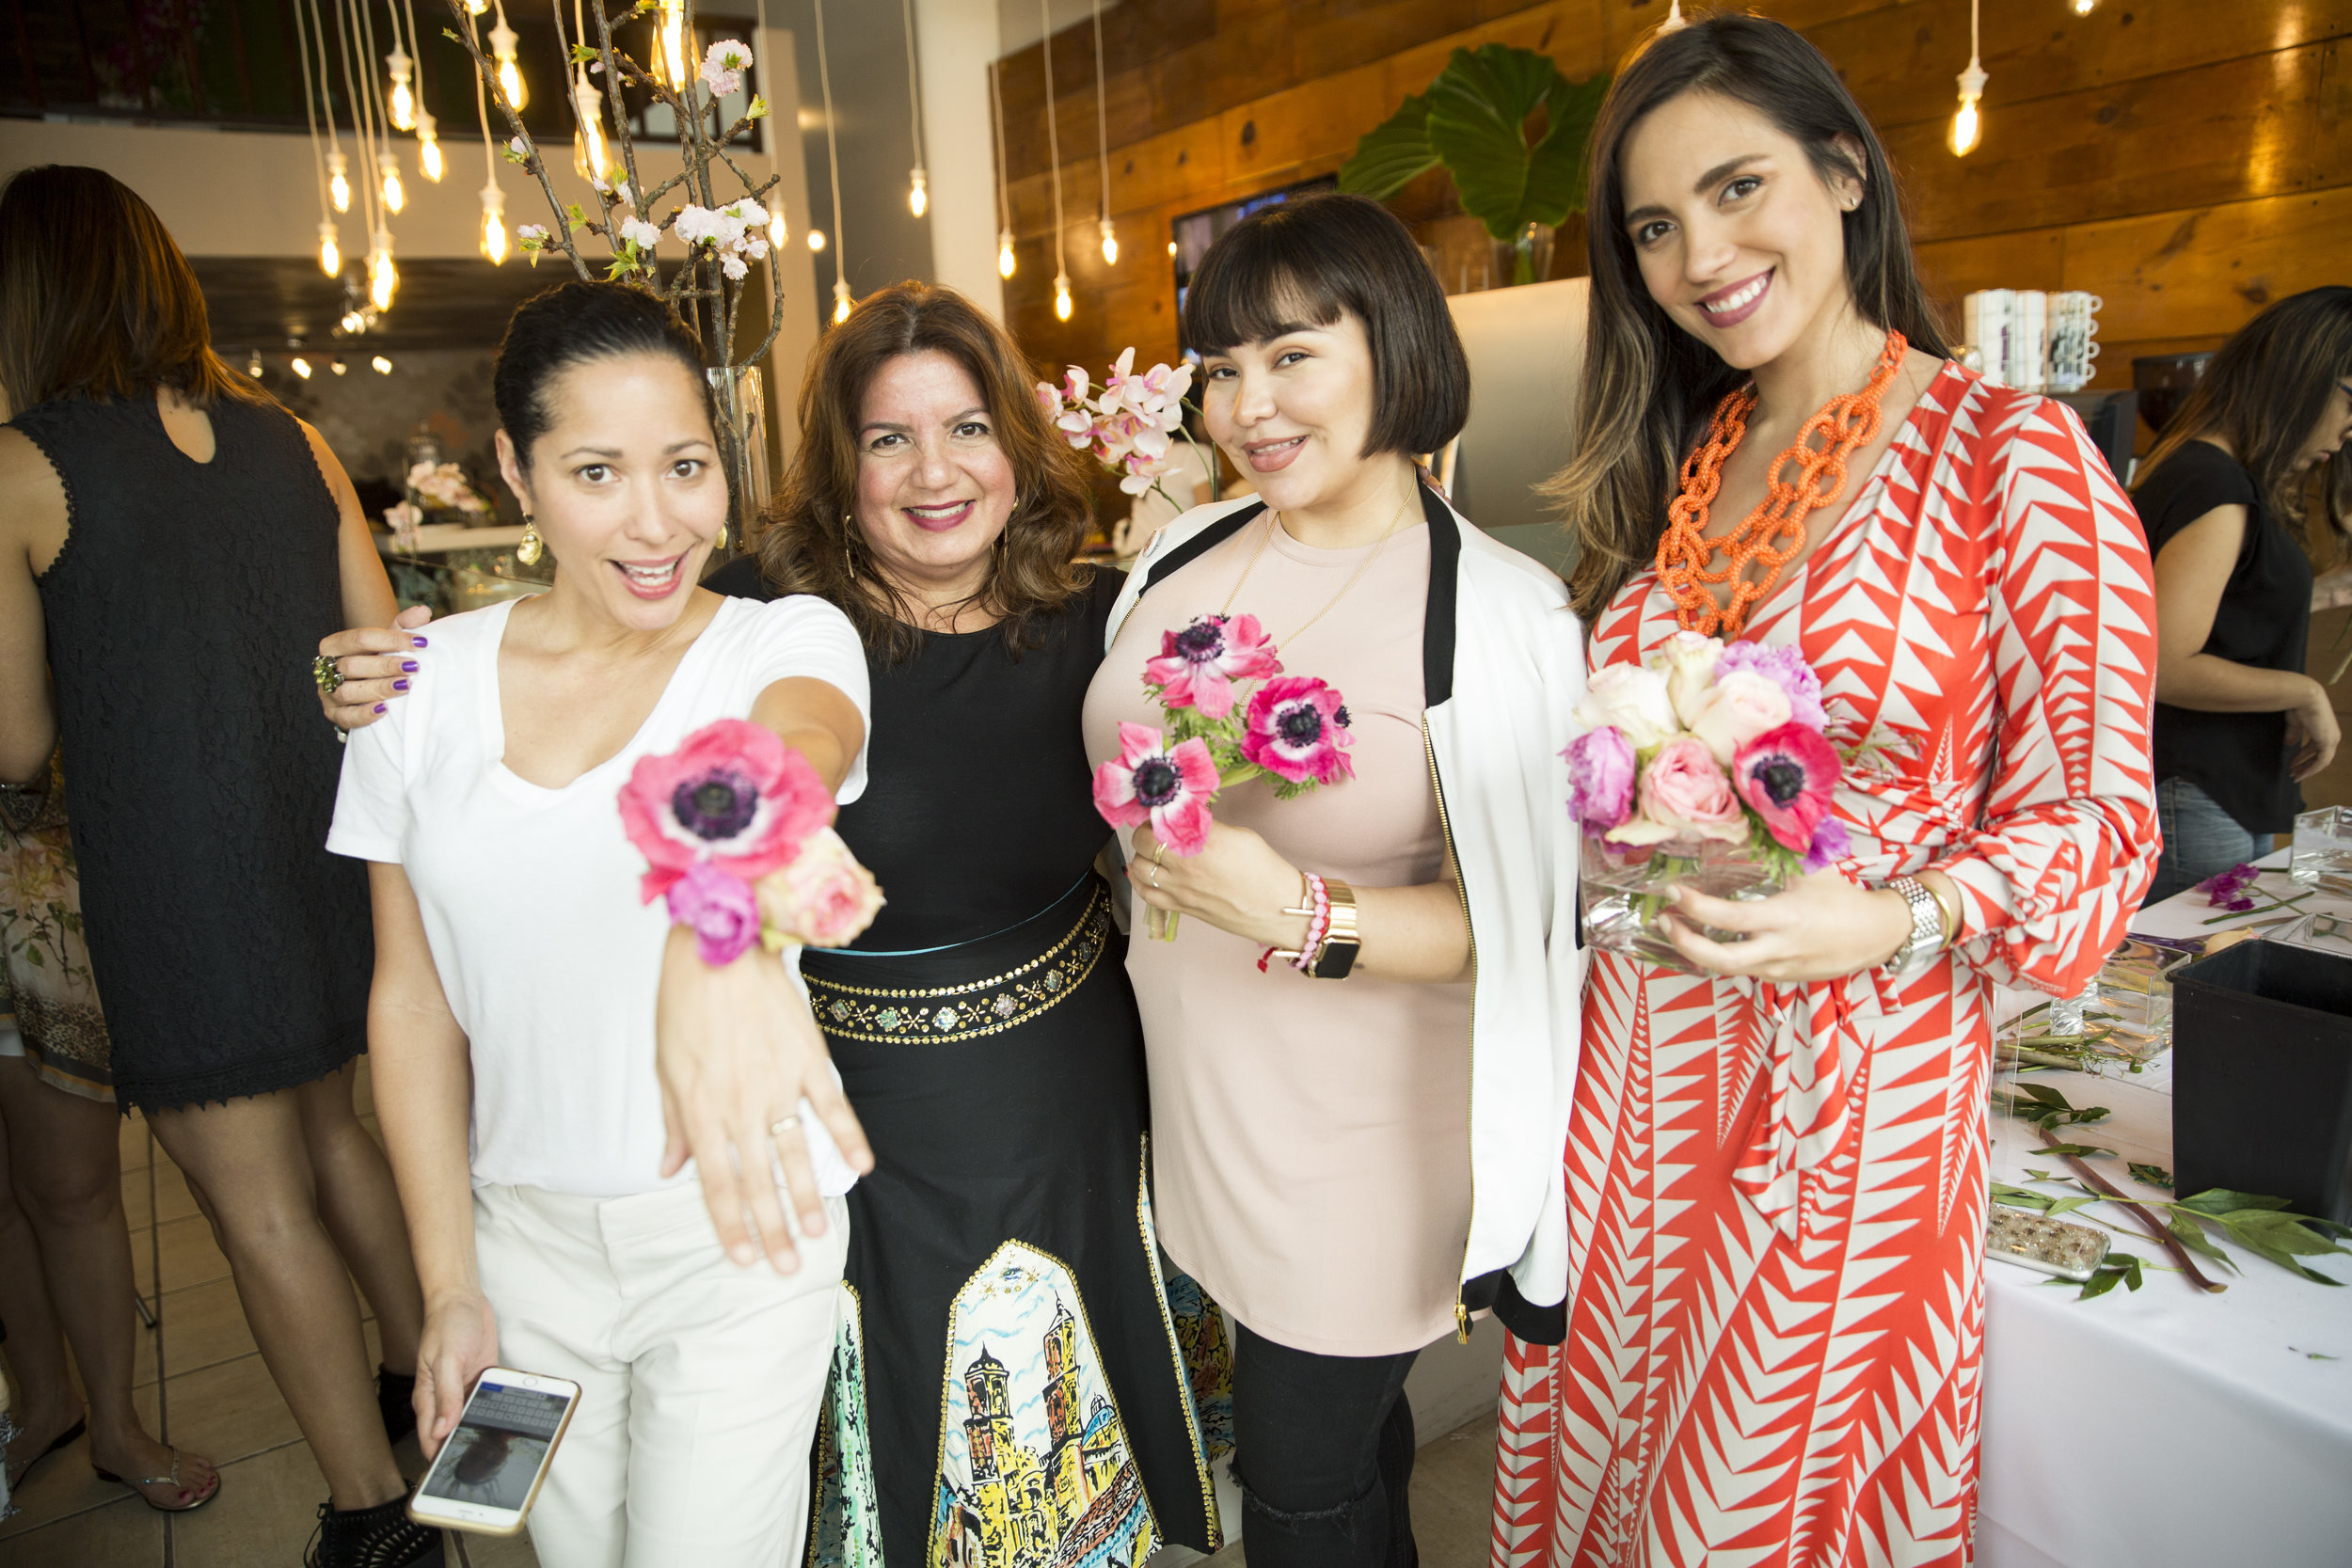 From left to right: Perla Sofía Curbelo from  Agrochic , Anabelle Barranco,  STEM Events  co-owner, Sandra Lobos from  The Decor Hunter  and yours truly wearing a  La Línea Boutique dress .   Picture provided by  STEM Events